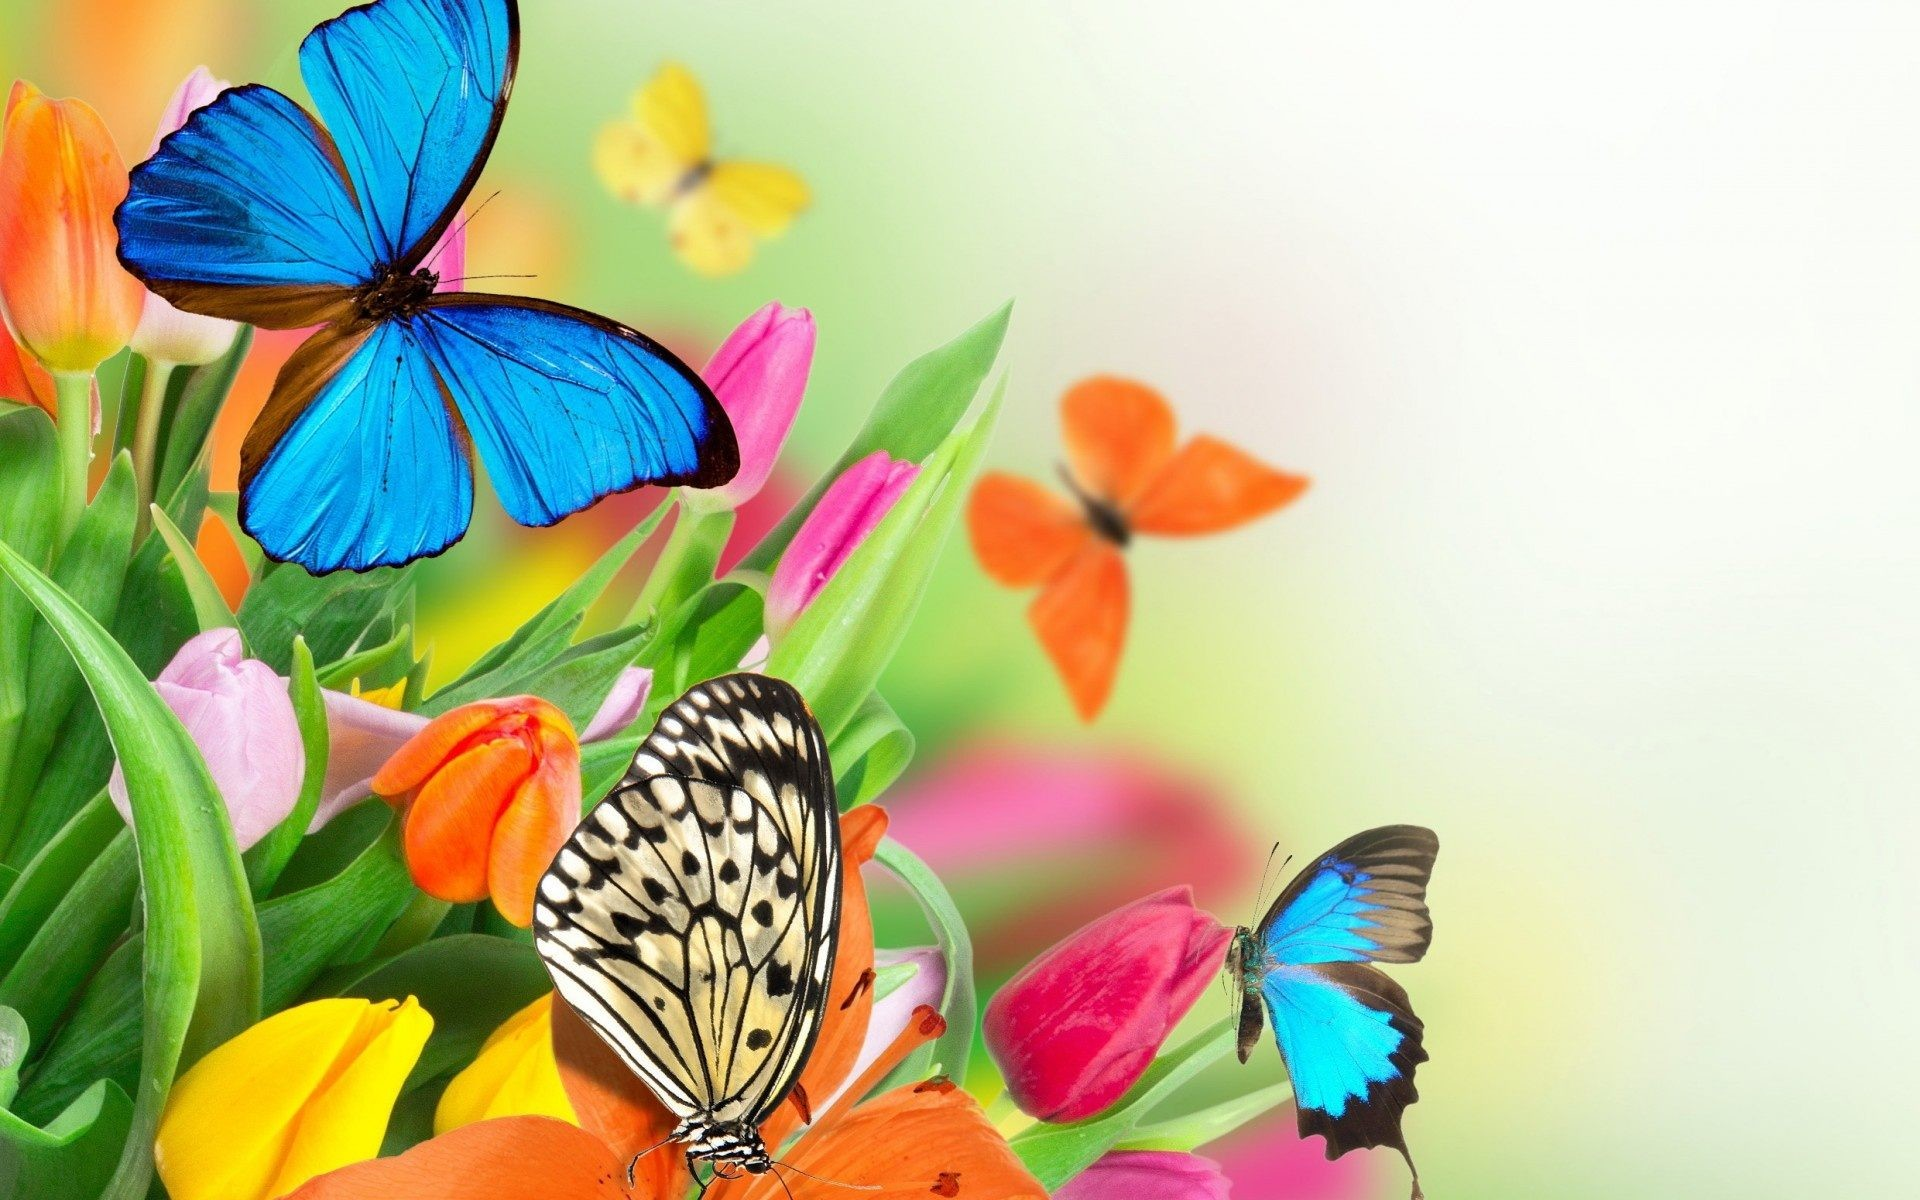 1920x1200 Flowers & Butterflies - flowers, spring, frame, colorful .